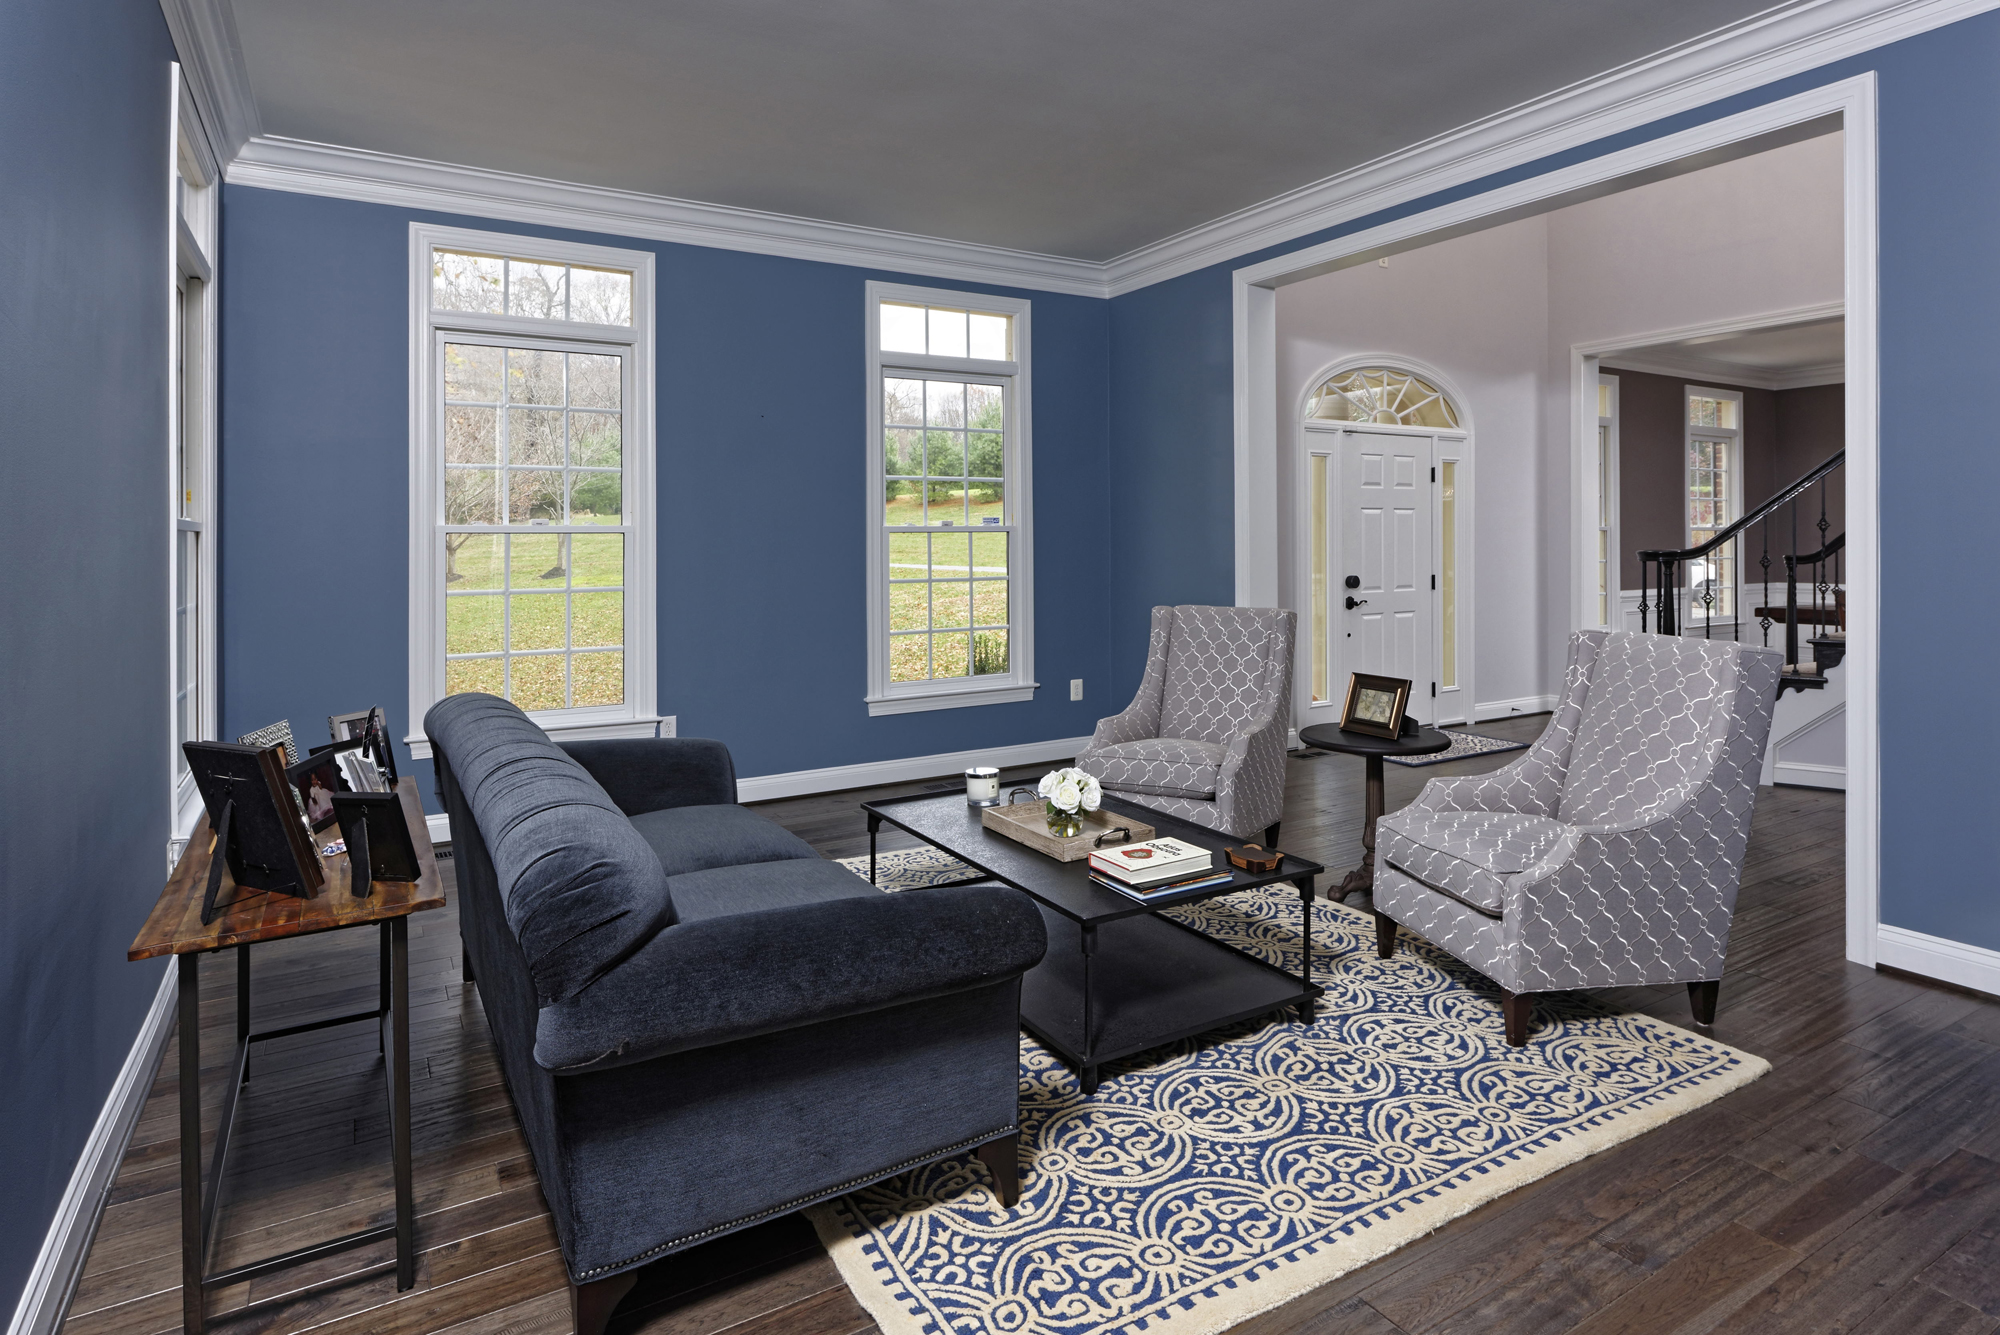 Kitchen and Master Suite Upgrade for Fairfax Station Home   BOWA